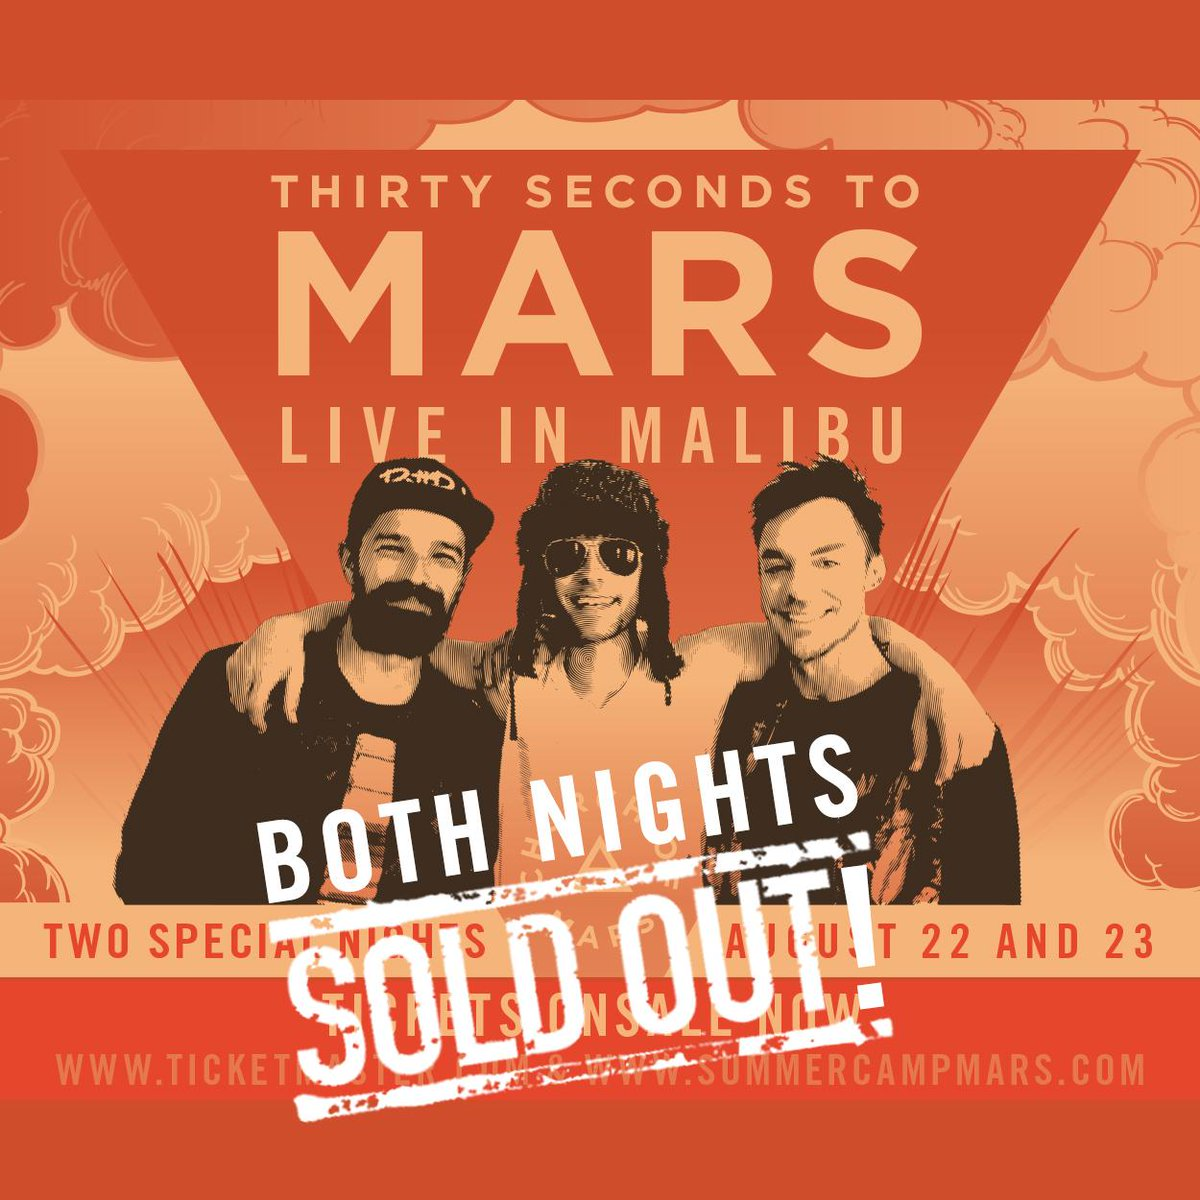 THANK YOU so much for two SOLD OUT Malibu shows!! If you're interested, join us for #CampMars: http://t.co/uhdPT2dSE0 http://t.co/C2G4xuGhAH